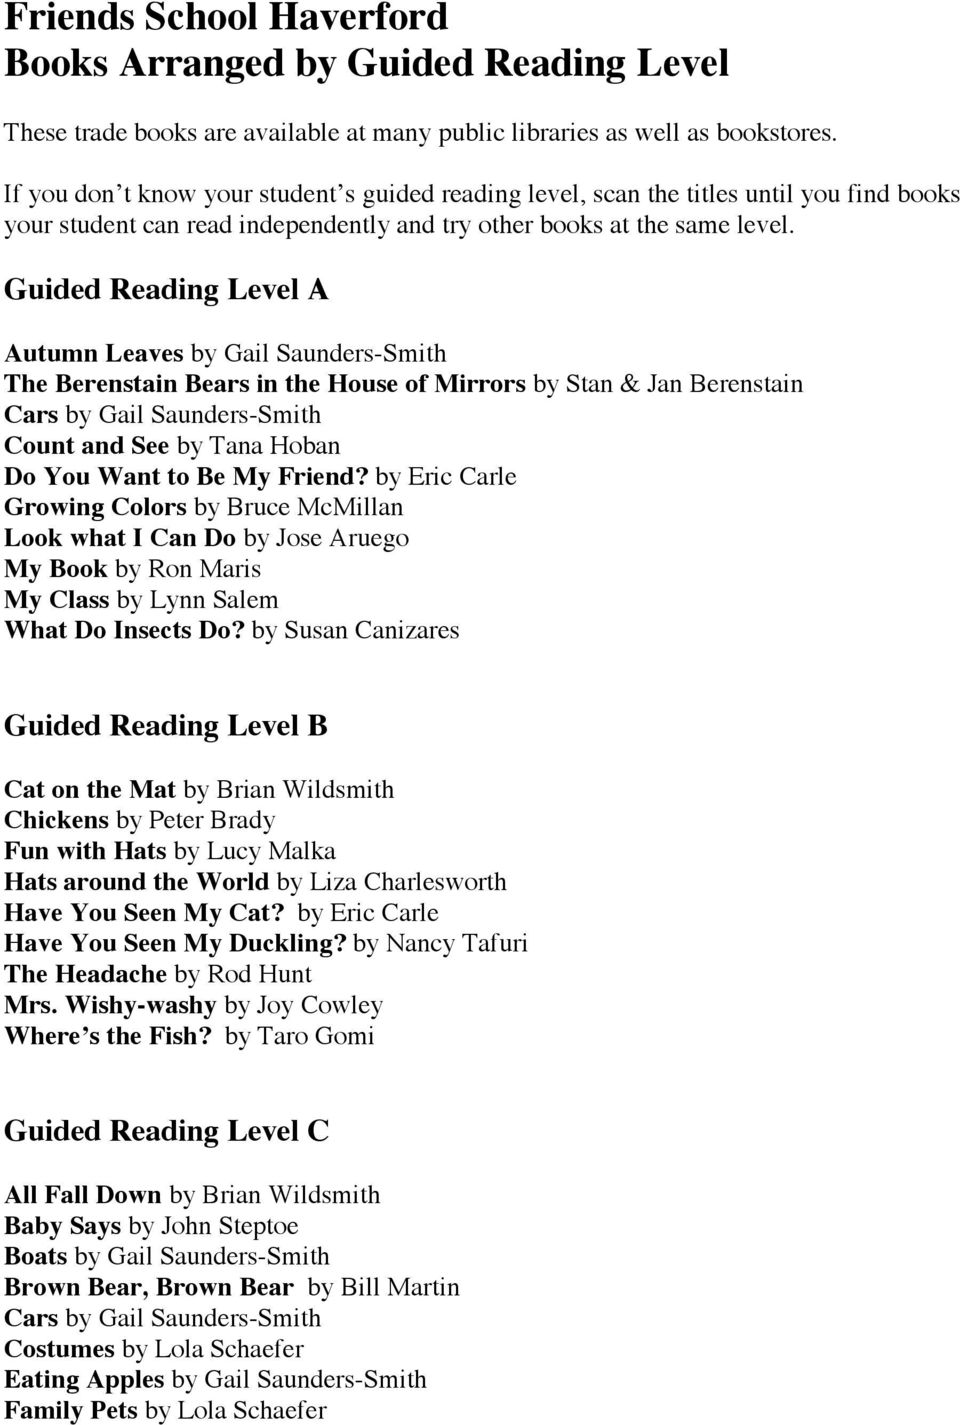 Guided Reading Level A Autumn Leaves by Gail Saunders-Smith The Berenstain Bears in the House of Mirrors by Stan & Jan Berenstain Cars by Gail Saunders-Smith Count and See by Tana Hoban Do You Want